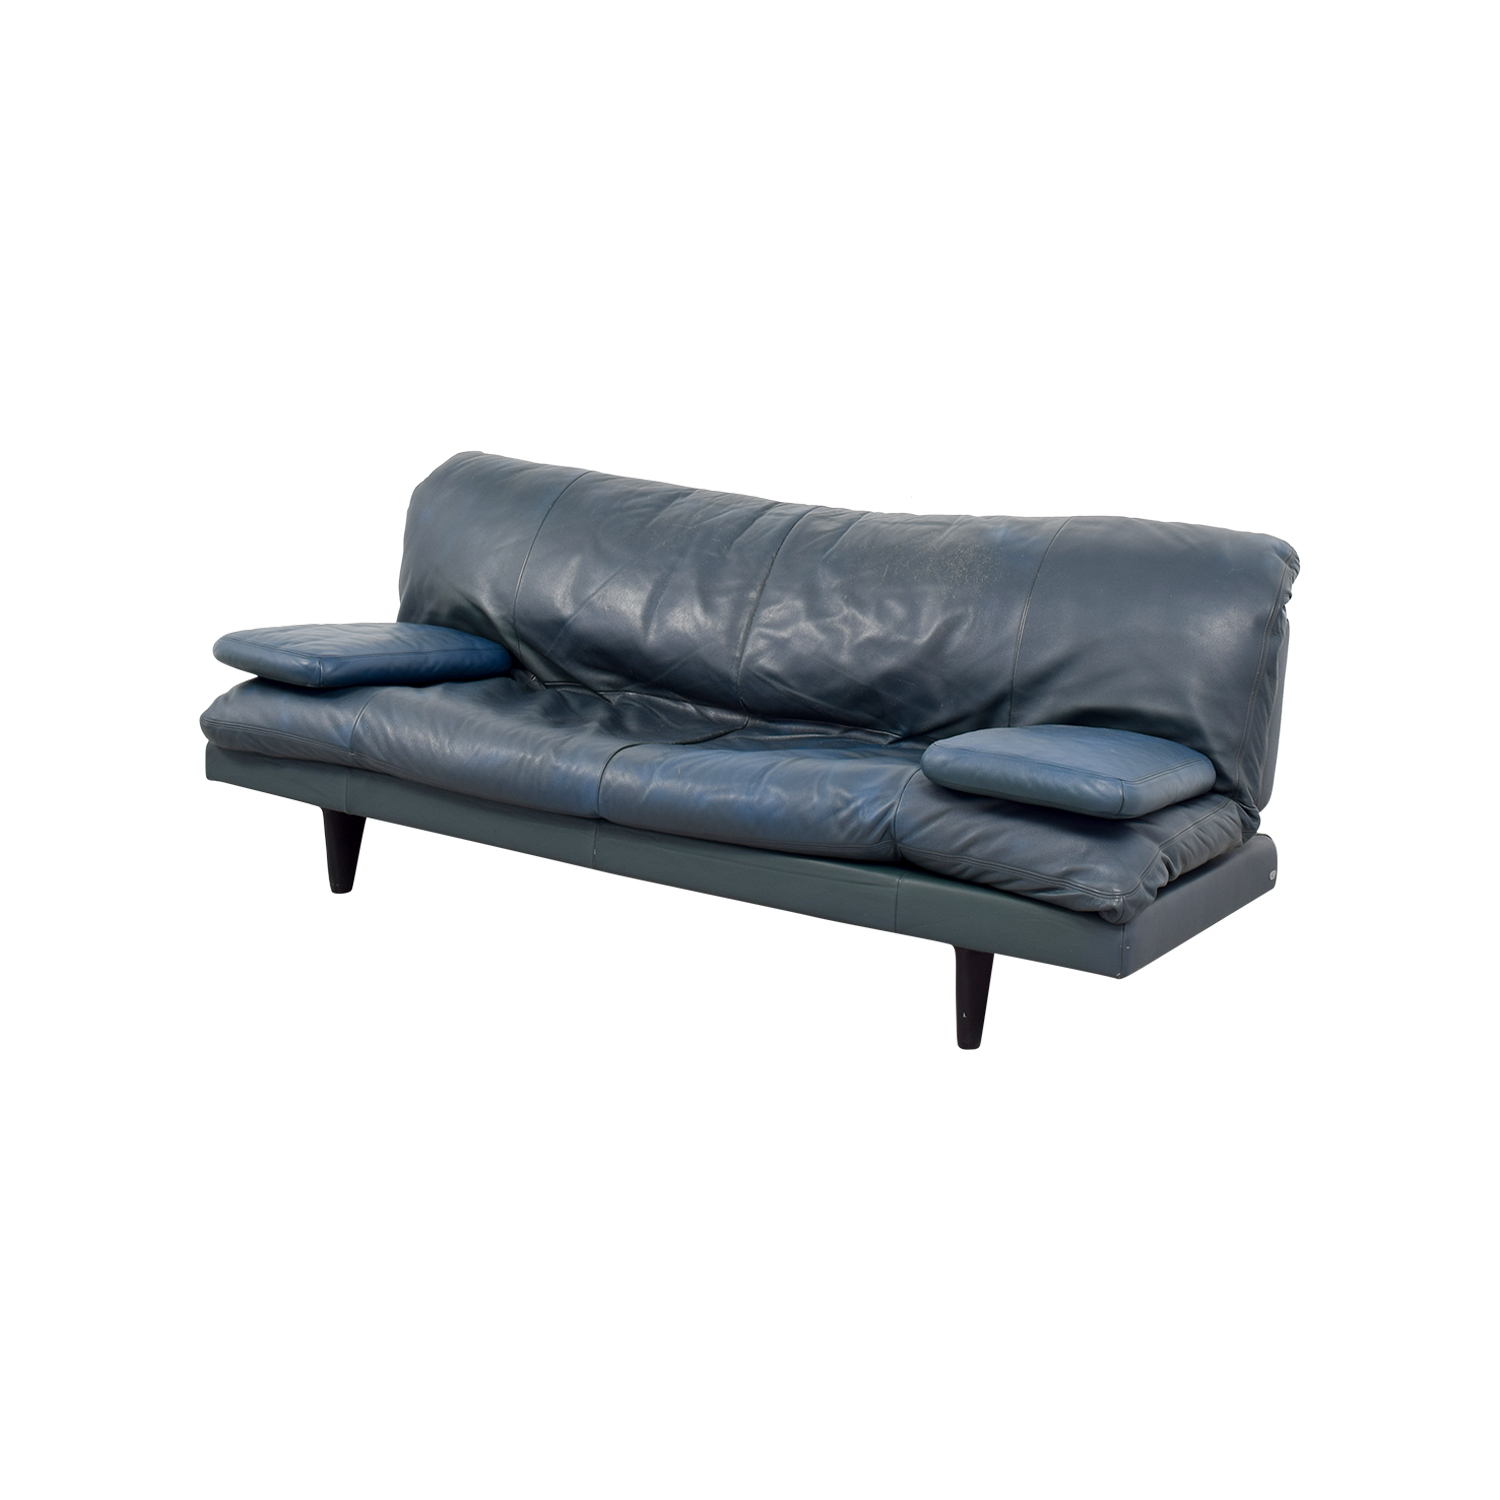 ... DDC DDC Green Leather Couch Green ...